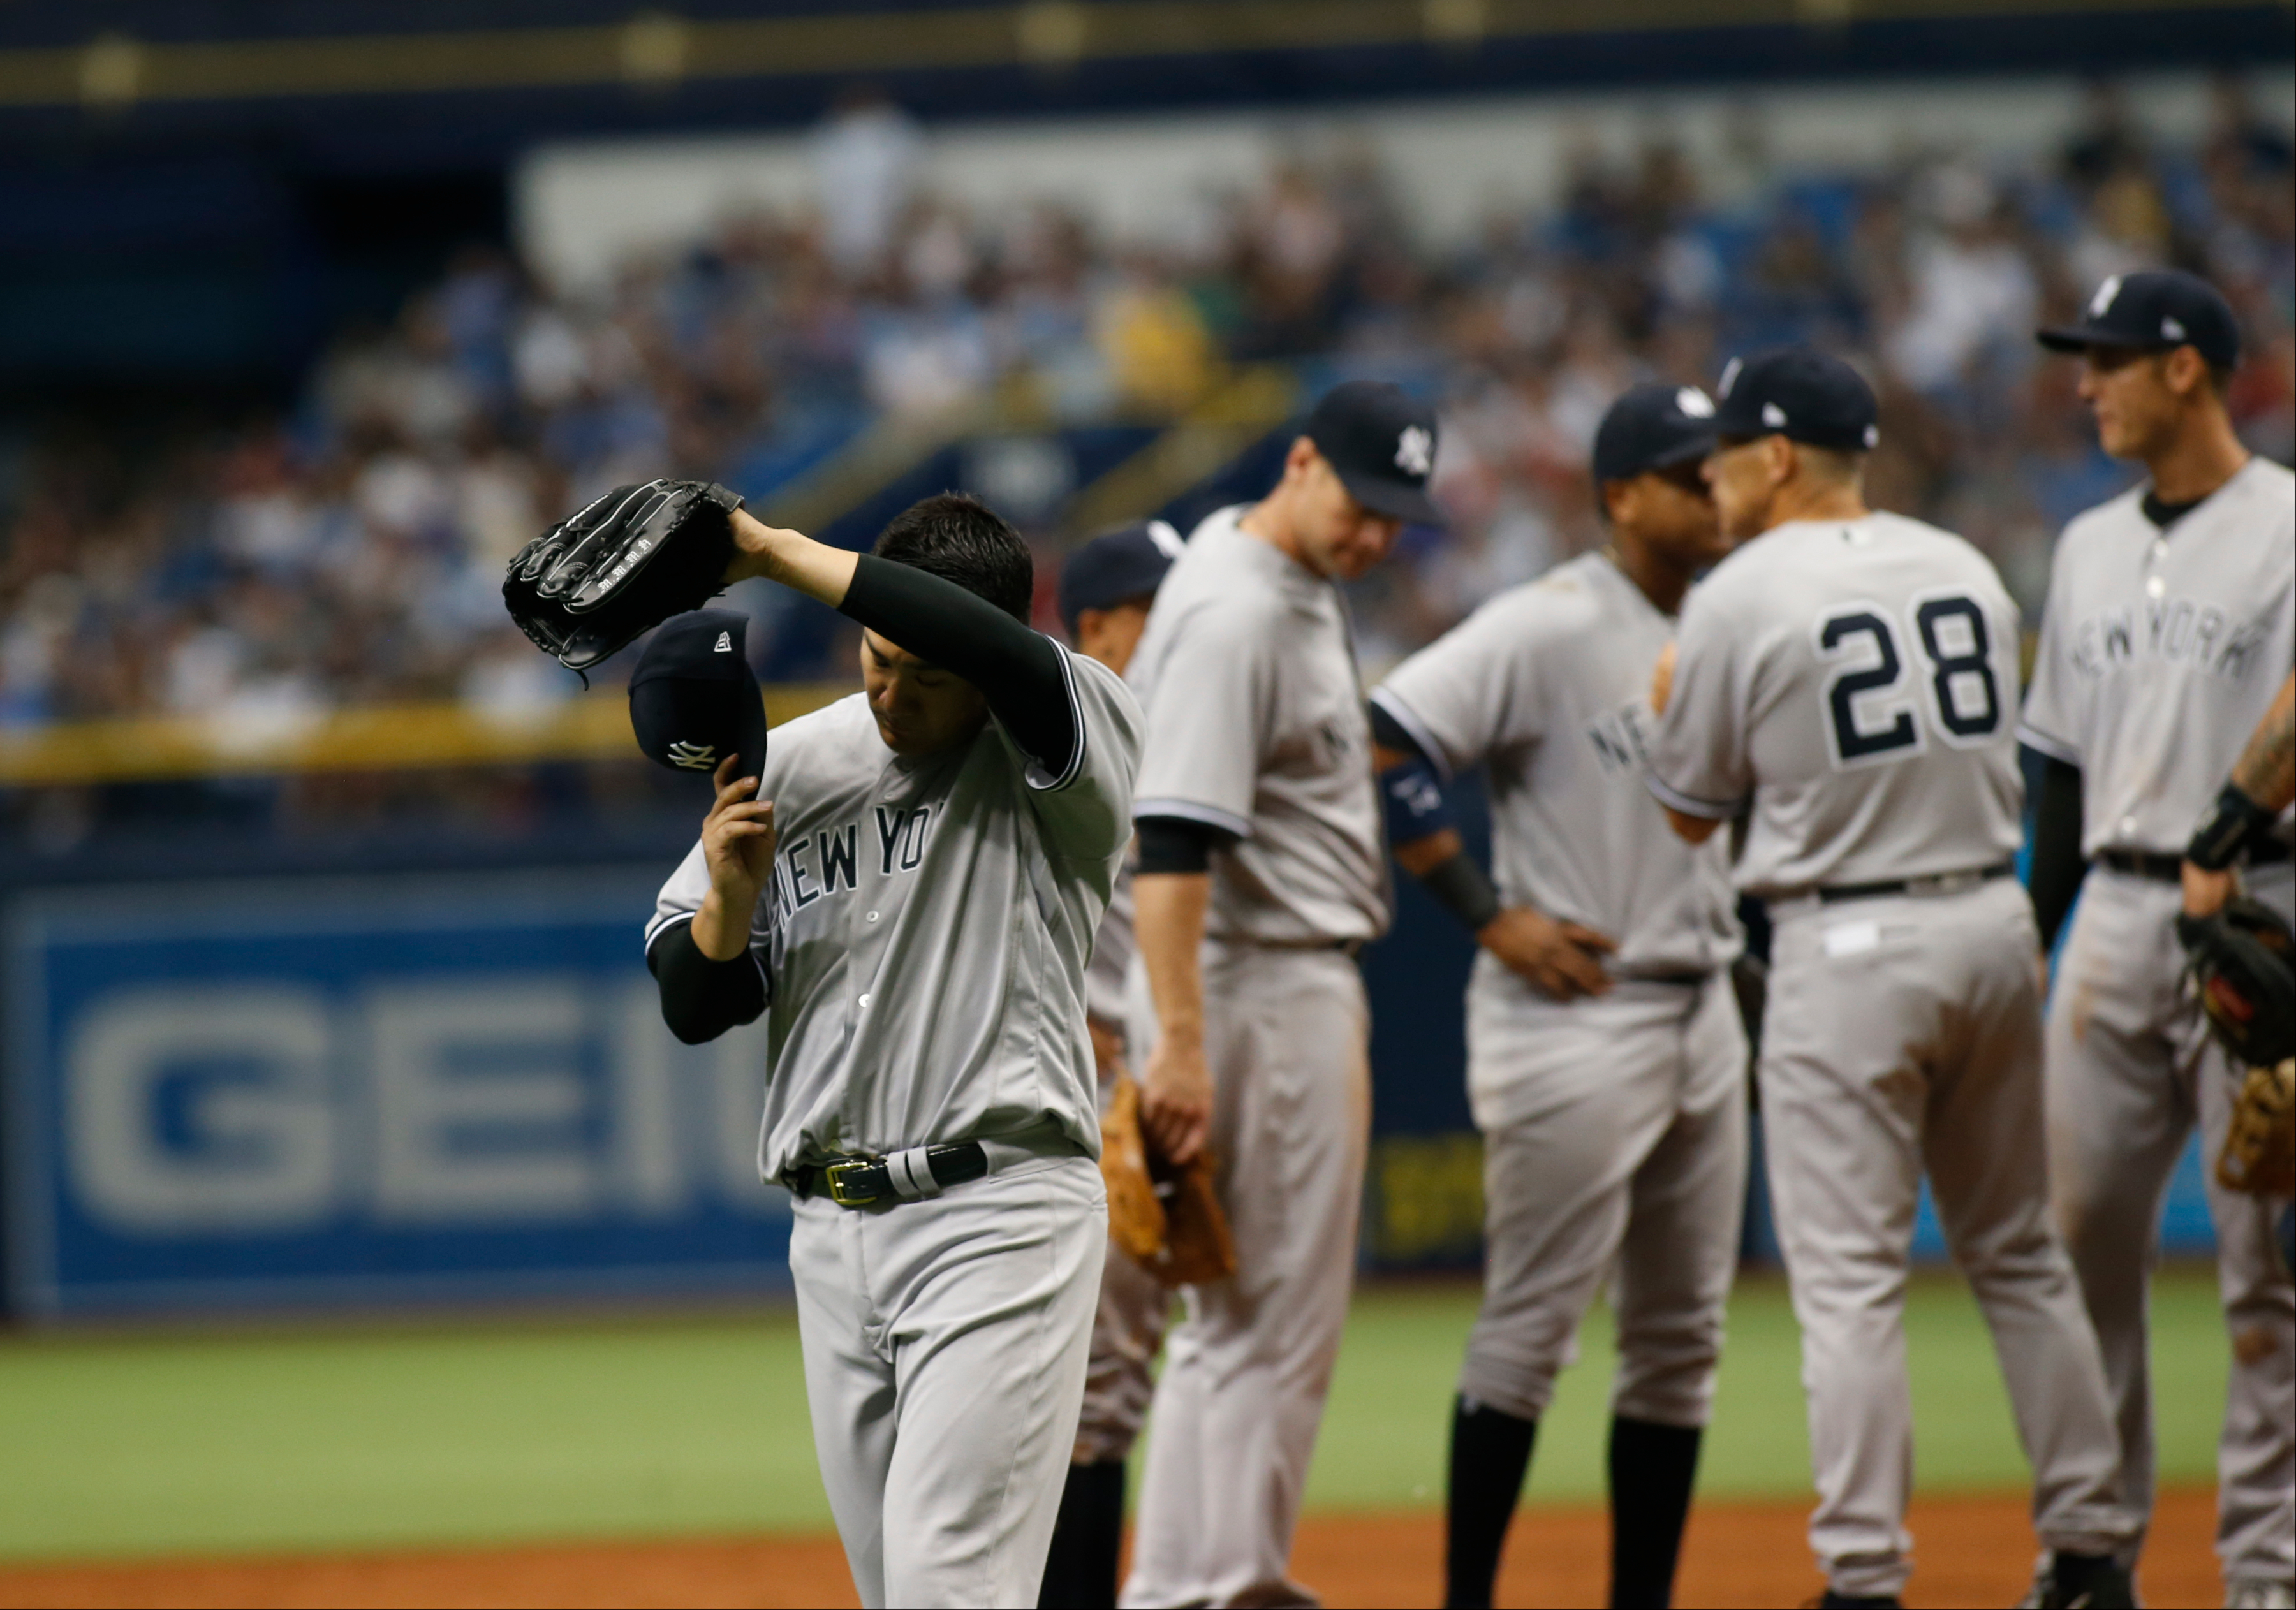 fdc38c60a The Yankees had the best record in baseball in Spring Training  24-9. The  hitters were hitting well